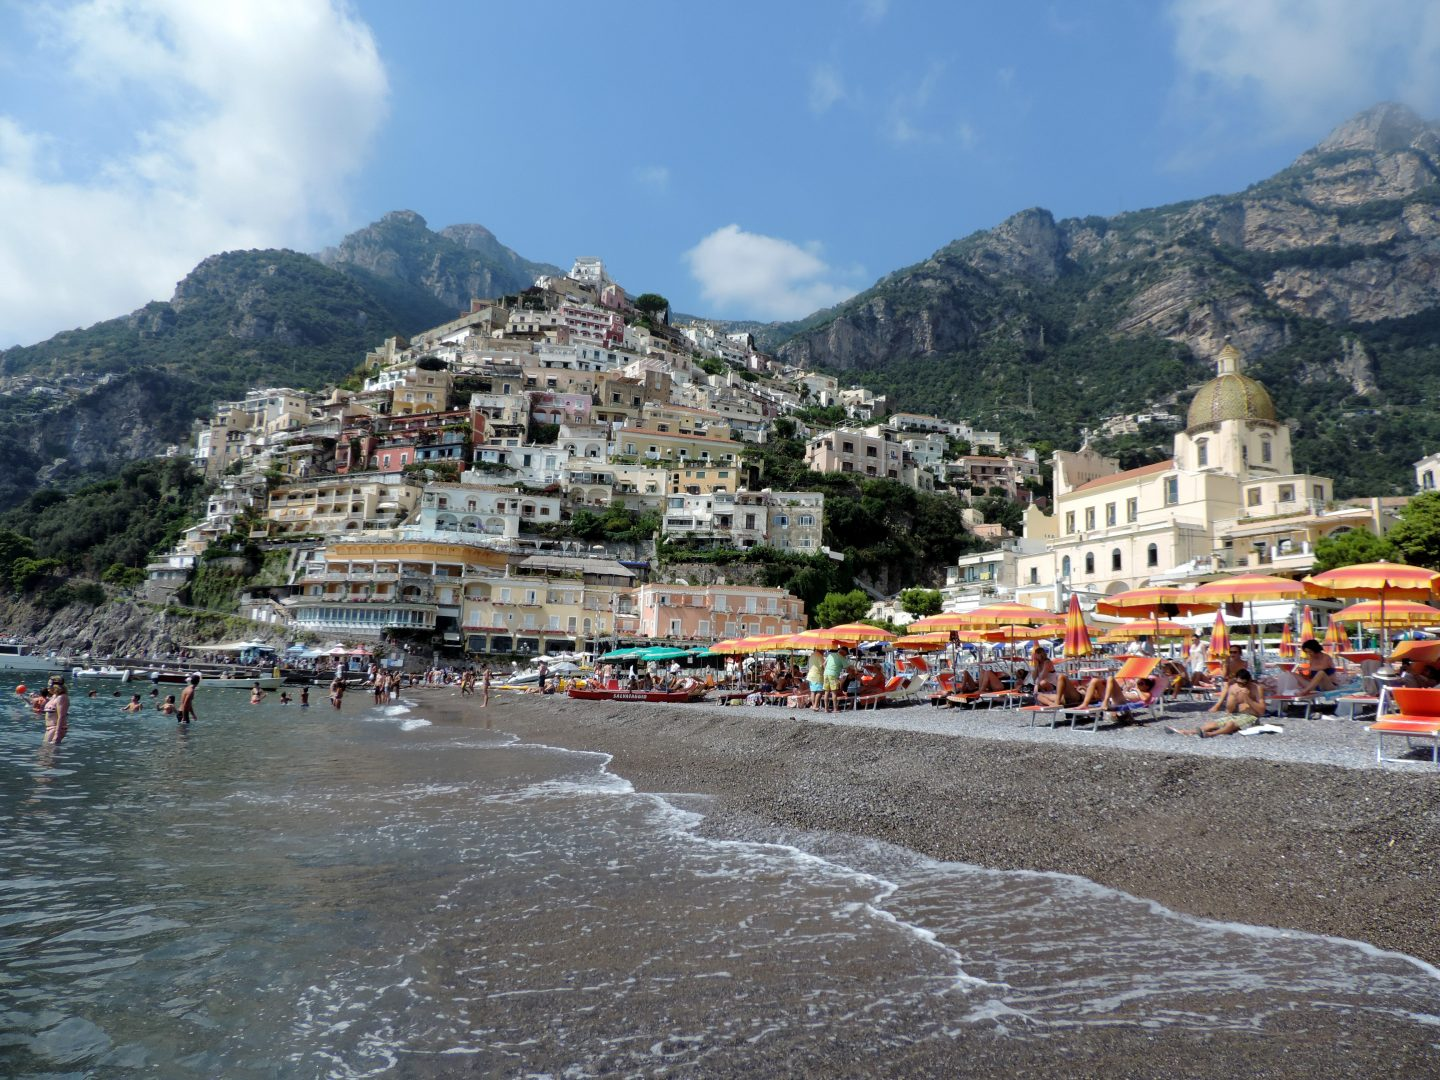 Postcards From The Amalfi Coast: A Photo Diary